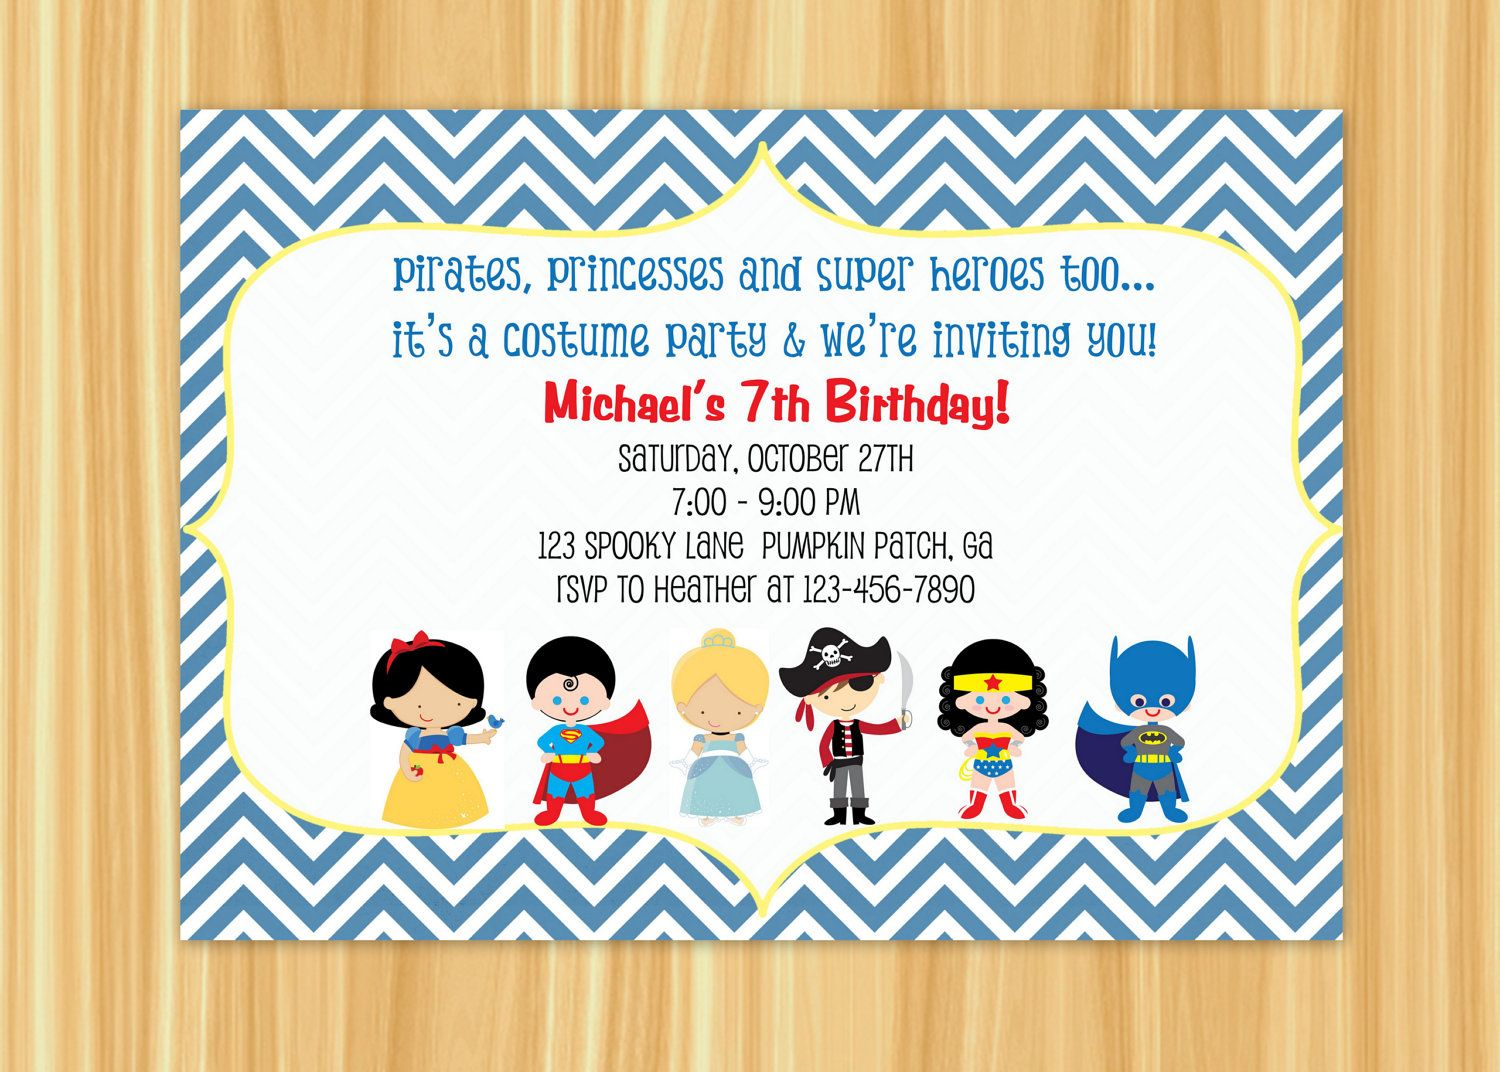 Custom Printable Kids Costume Party Birthday Invitation 1000